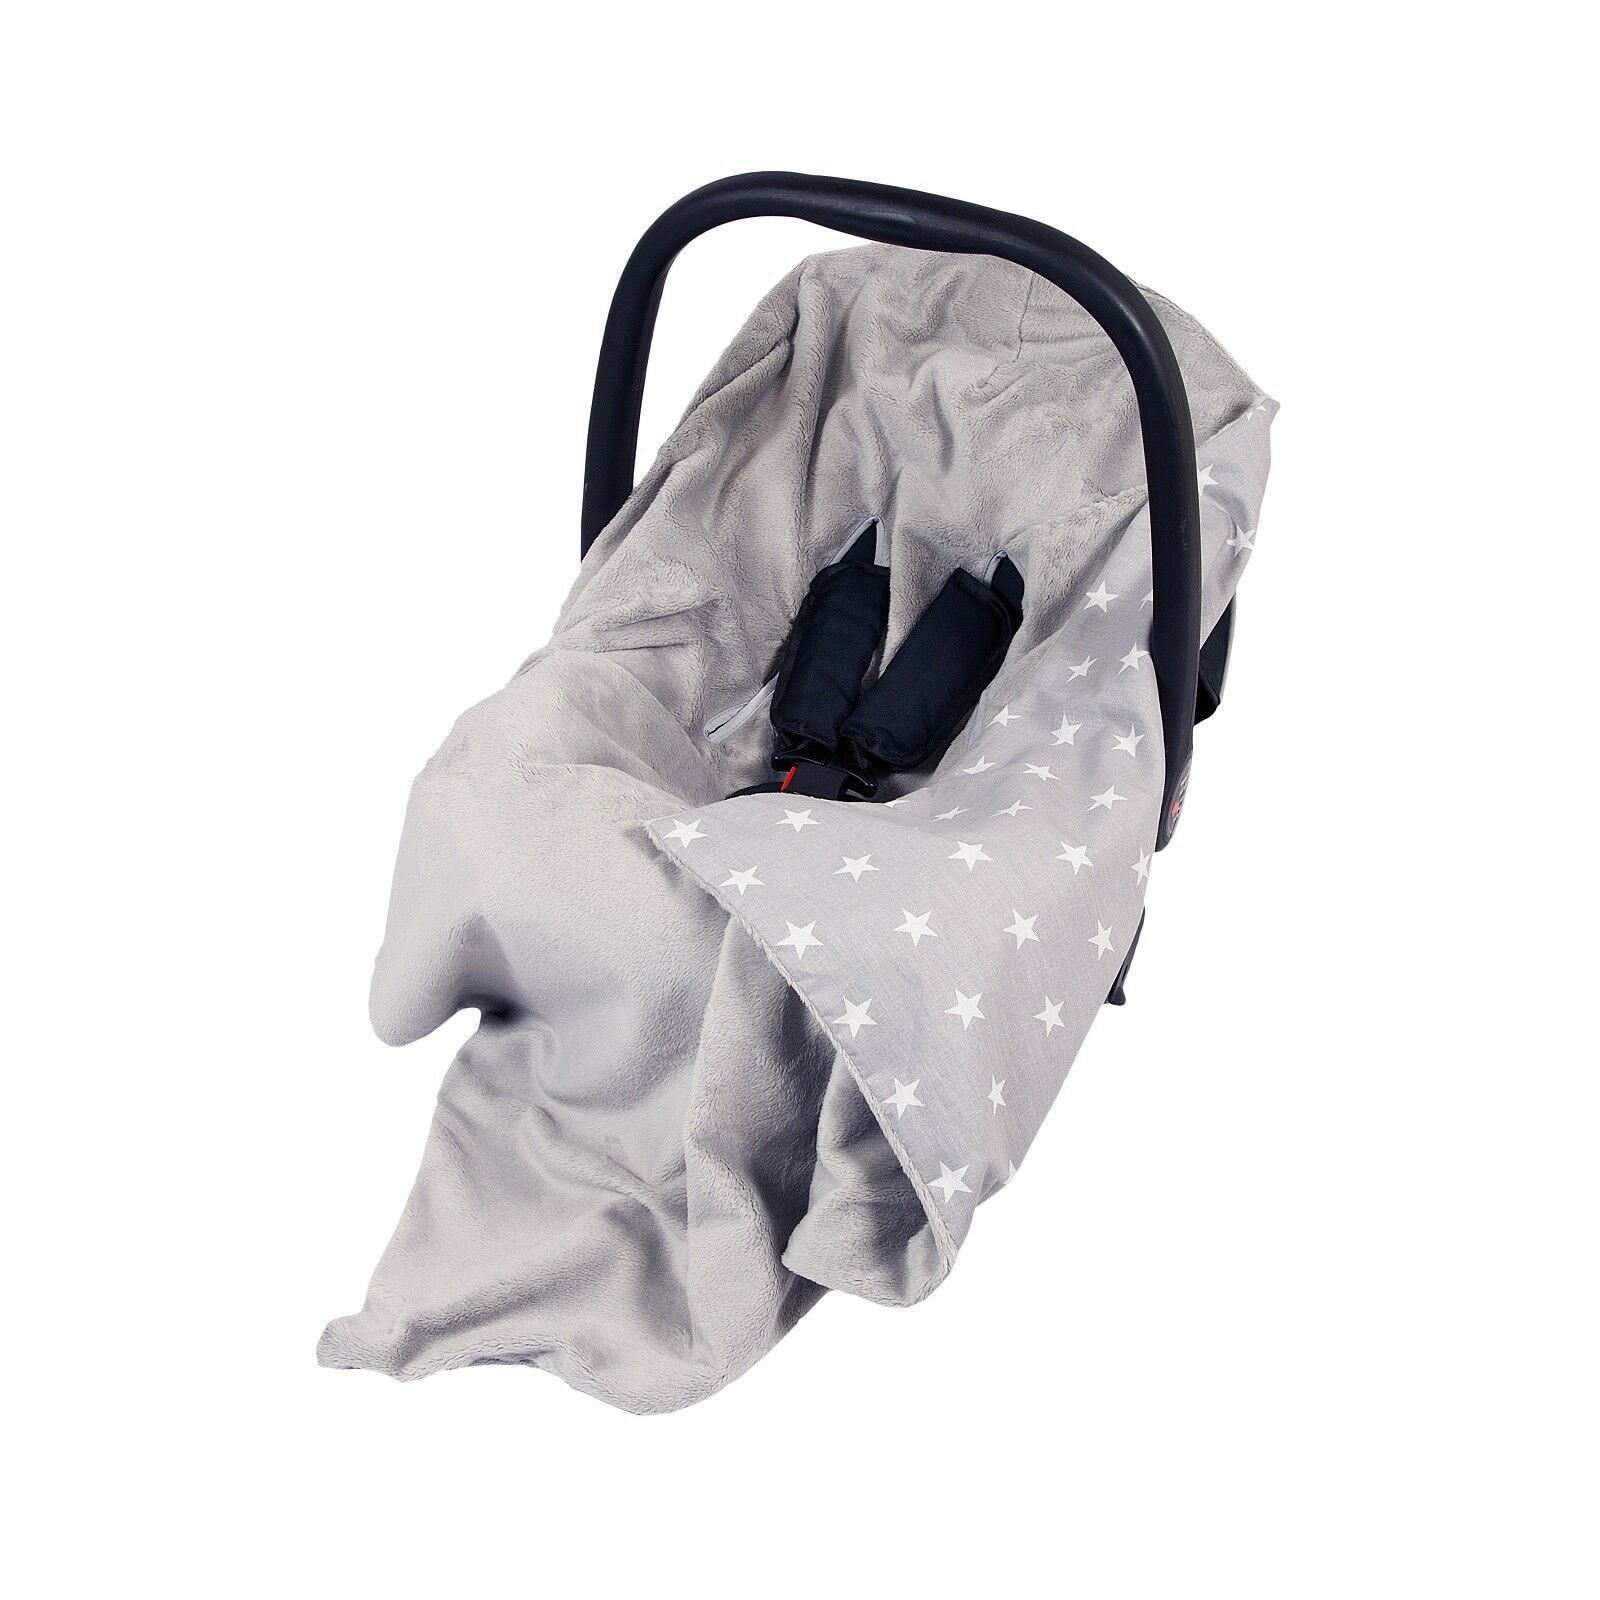 NEW GREAT DOUBLE SIDED BABY WRAP FOR CAR SEAT TRAVEL BLANKET